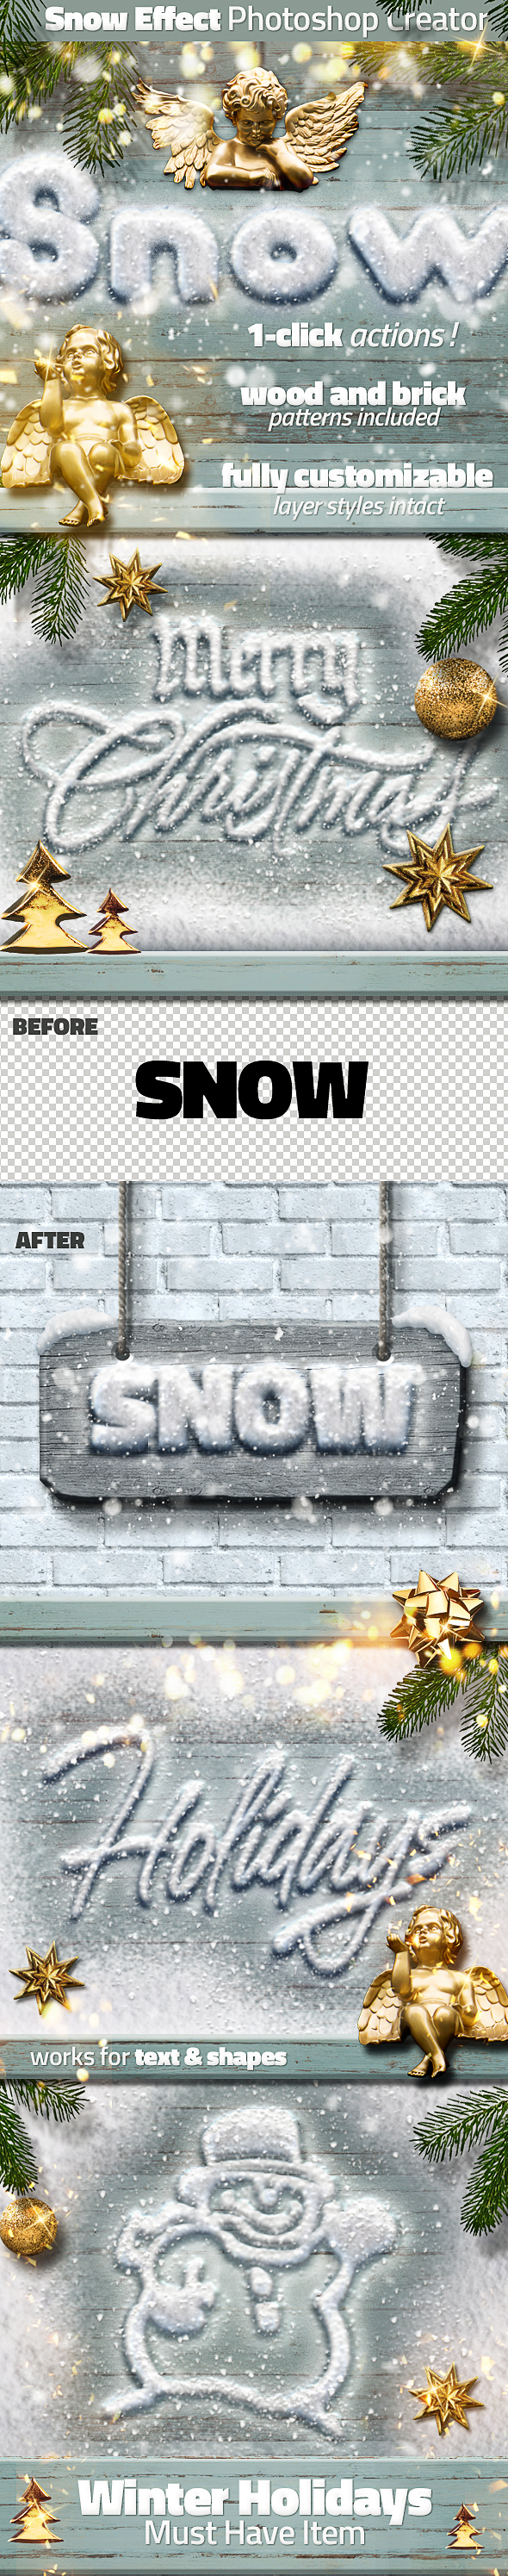 Snow and Wood Photoshop Winter Sign Creator - Text Effects Actions